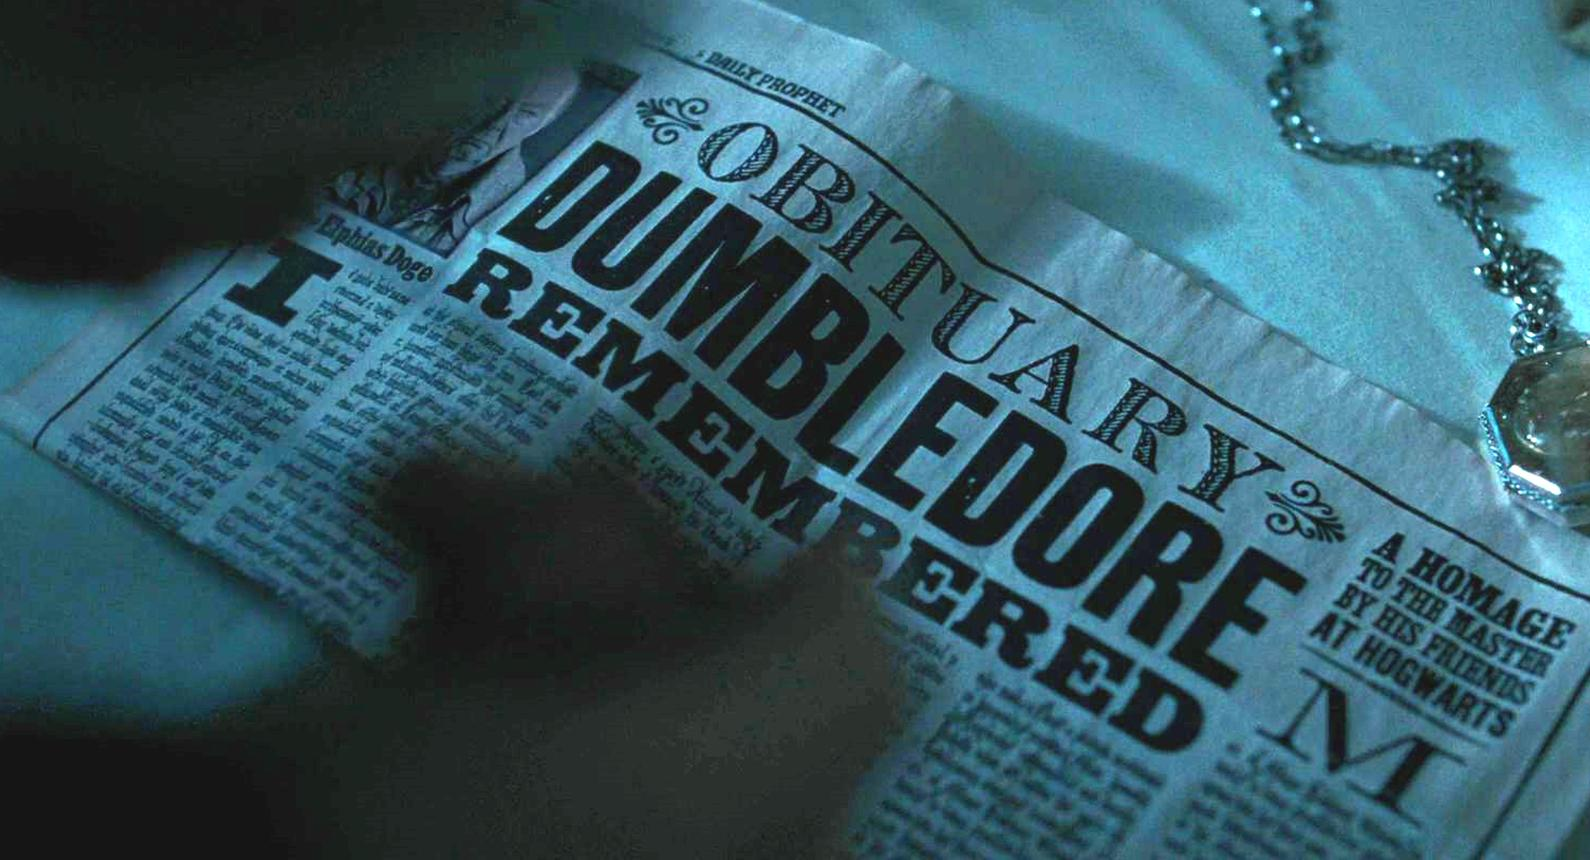 http://static2.wikia.nocookie.net/__cb20110614004358/harrypotter/images/1/12/Dumbledore_Remembered.jpg